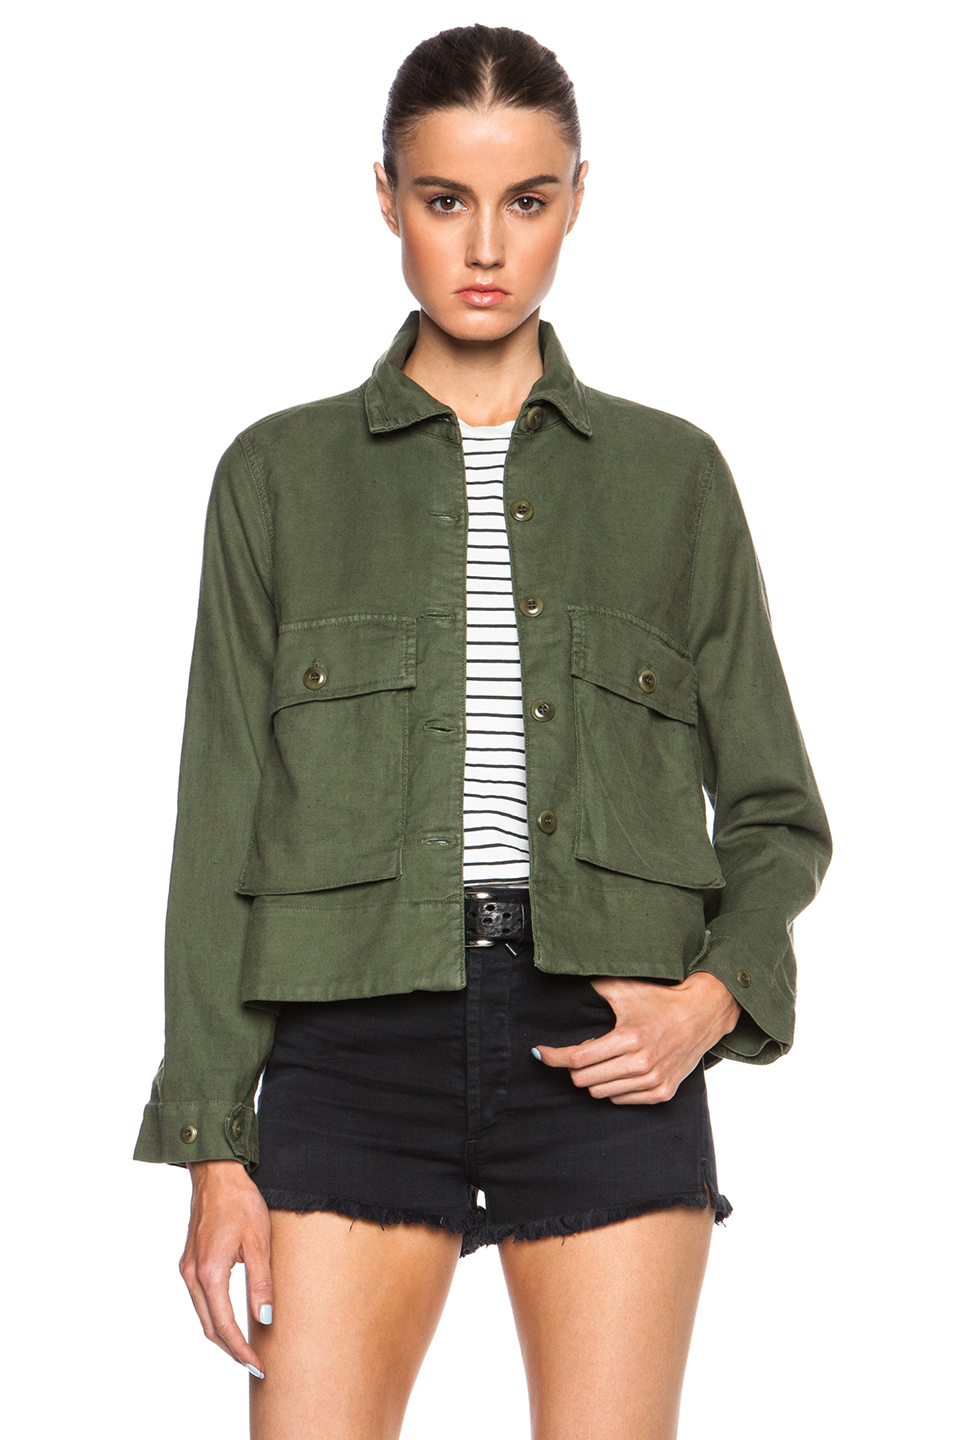 The Great Swingy Army Jacket in Green